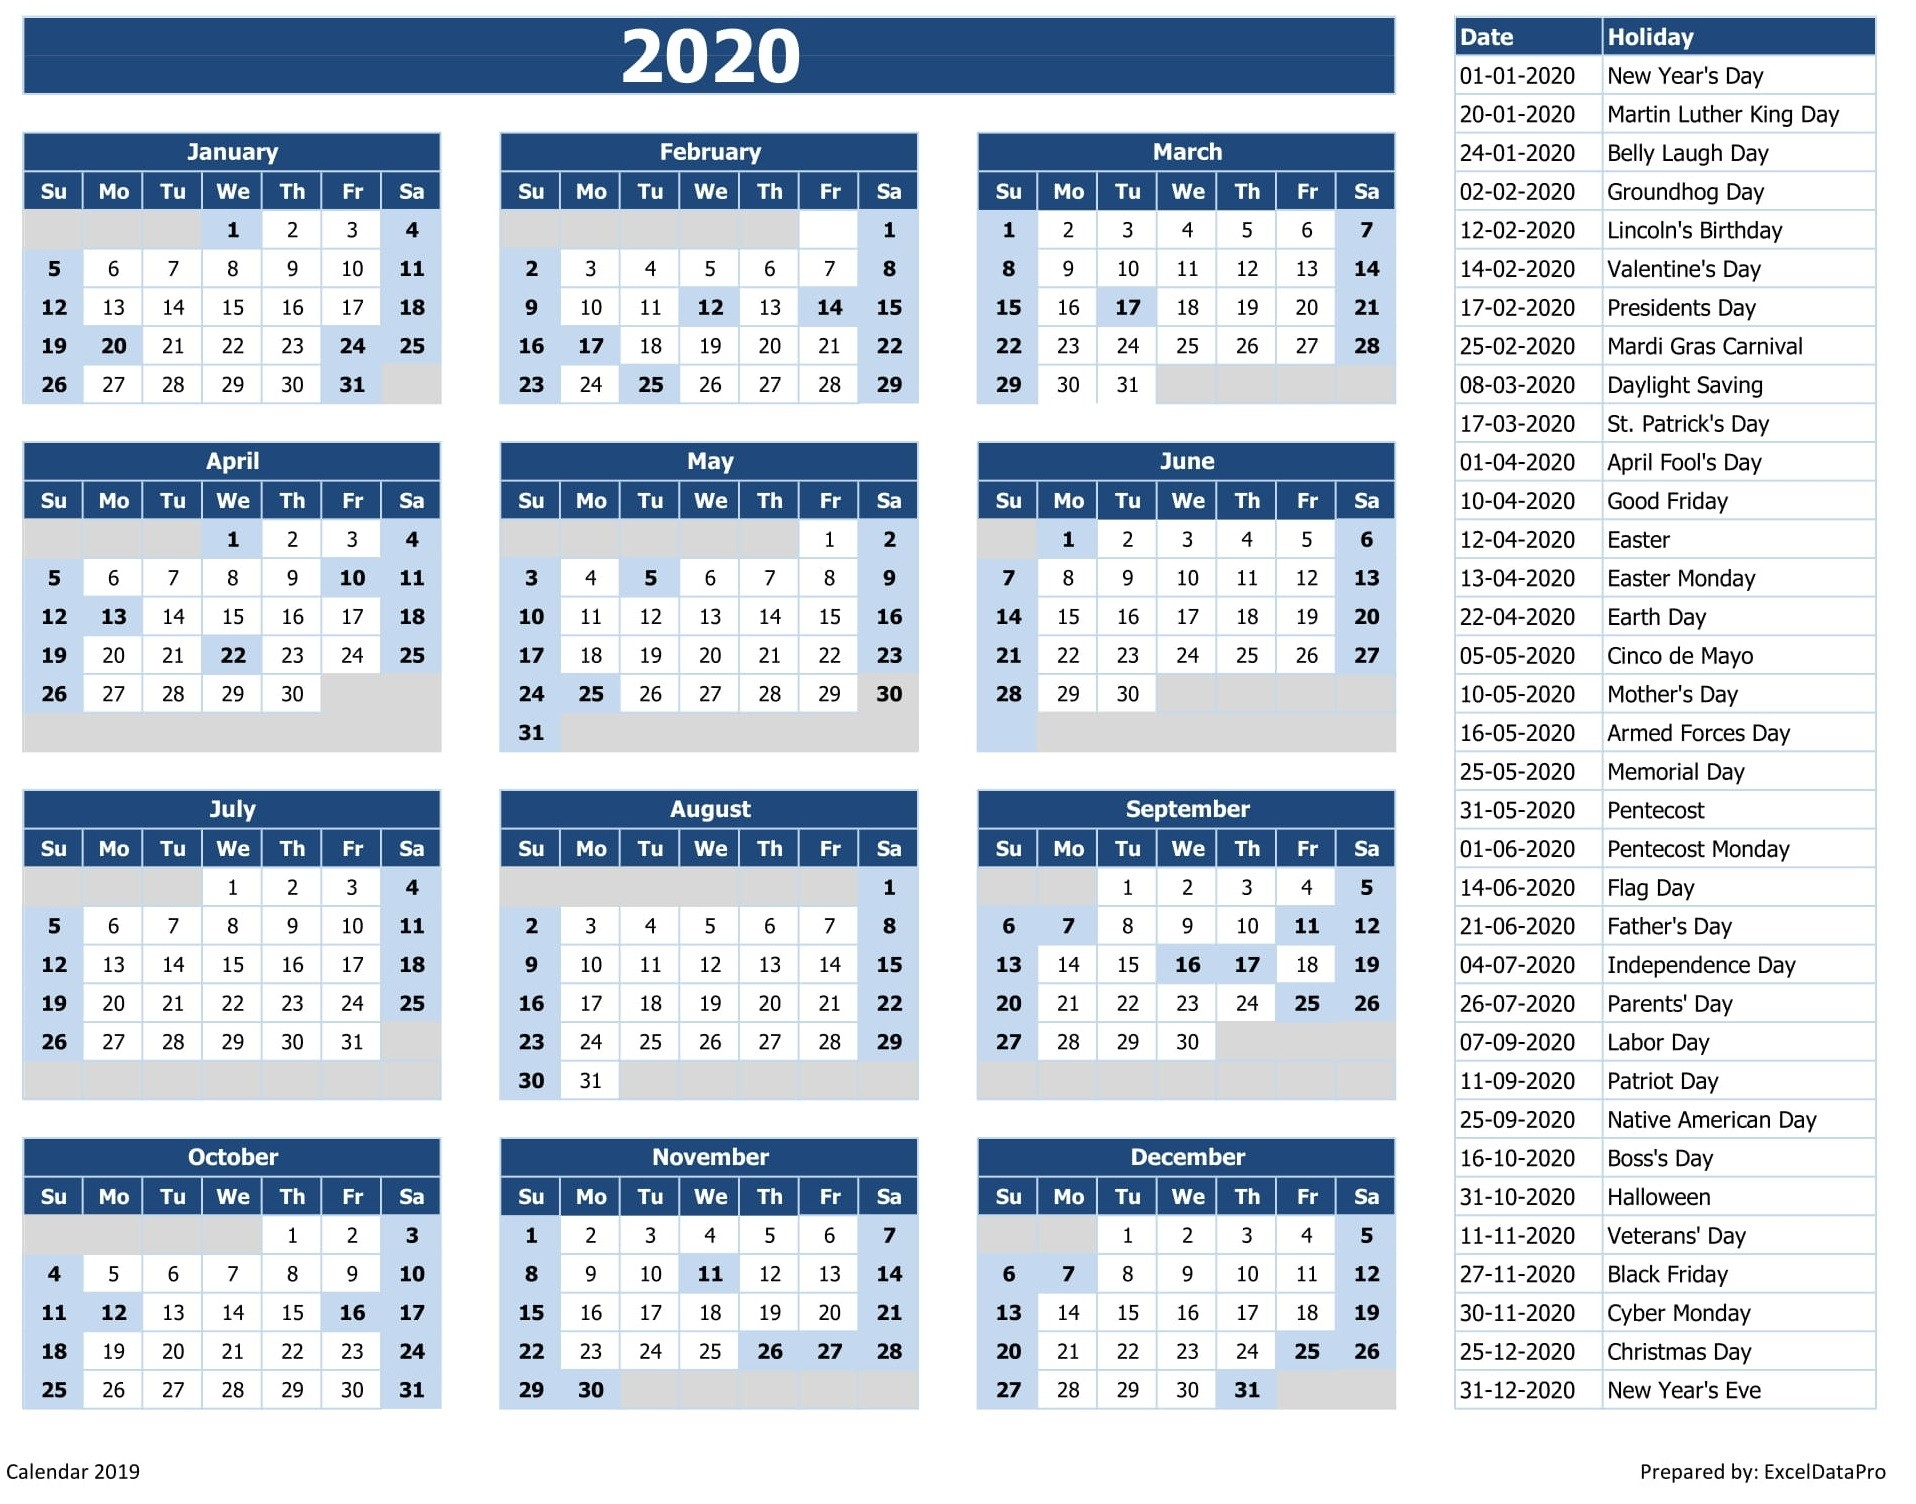 Download 2020 Yearly Calendar (Sun Start) Excel Template-Excel List Of Holidays 2020